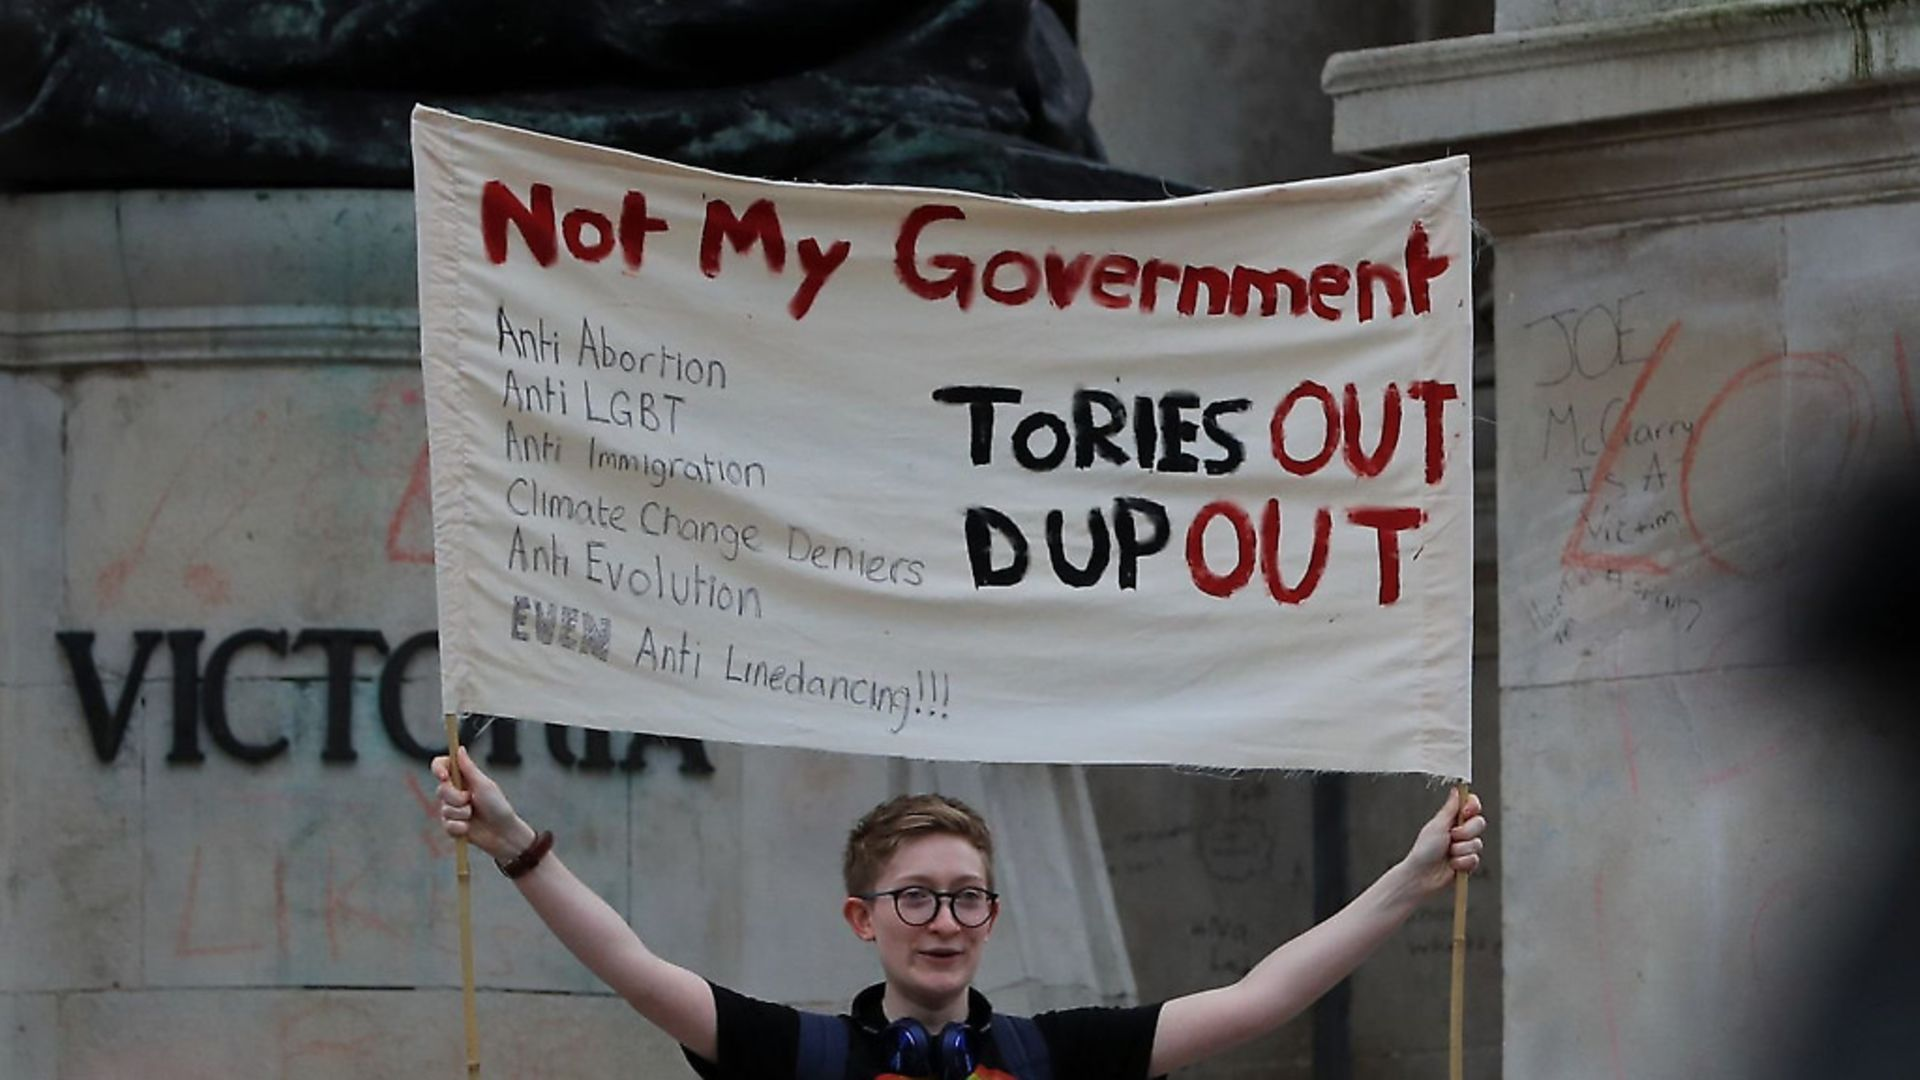 A protester holds up a sign at a demonstration in Liverpool - Credit: PA Wire/PA Images